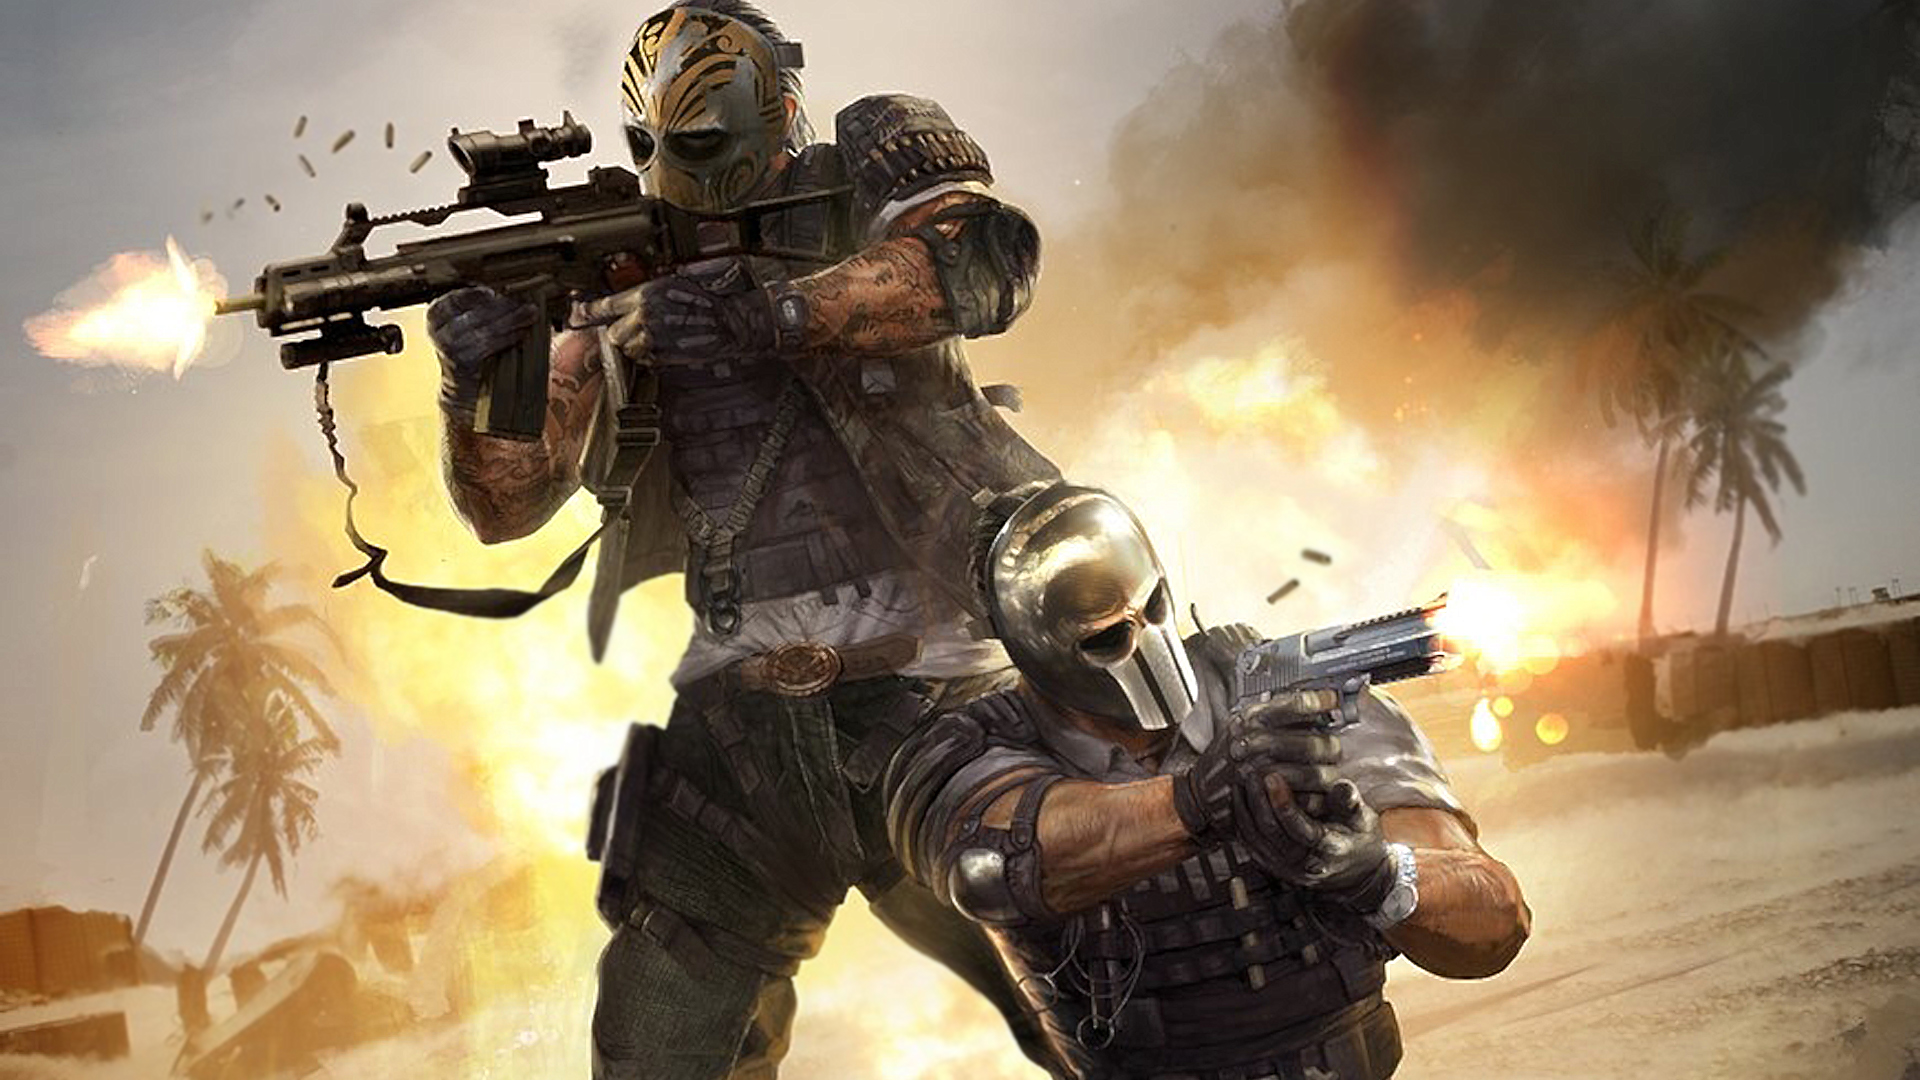 Killzone Shadow Fall Full Hd Wallpaper Army Of Two The Devil S Cartel Hd Wallpaper Background